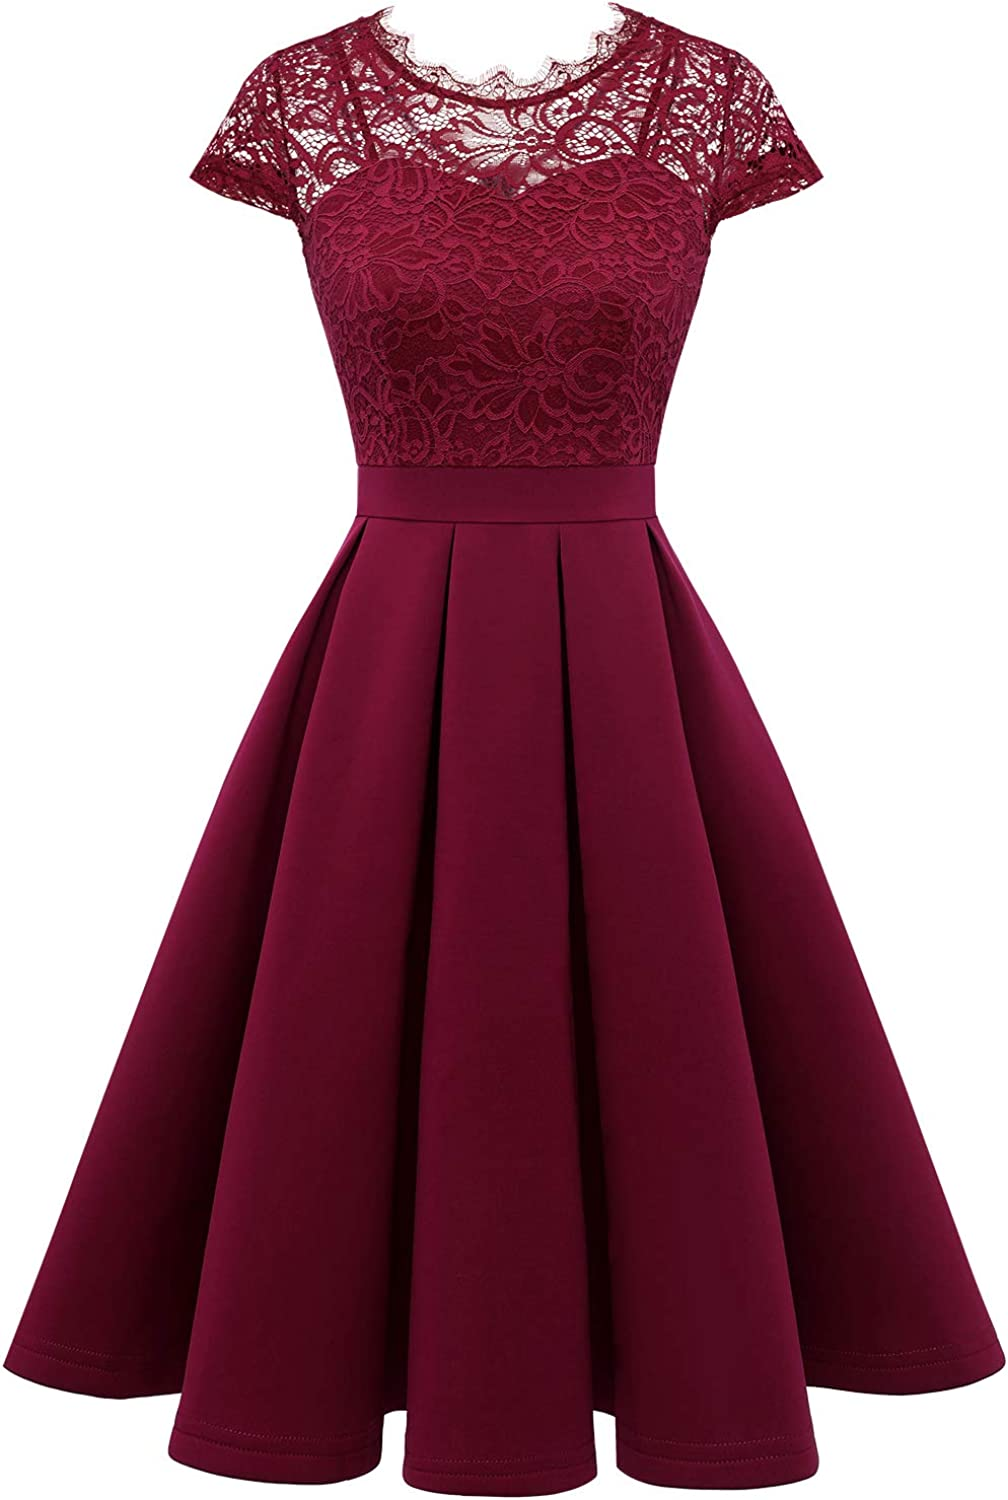 Dressystar Women's Vintage Floral Lace Cocktail Party Dress Fit and Flare Prom Dress with Pockets